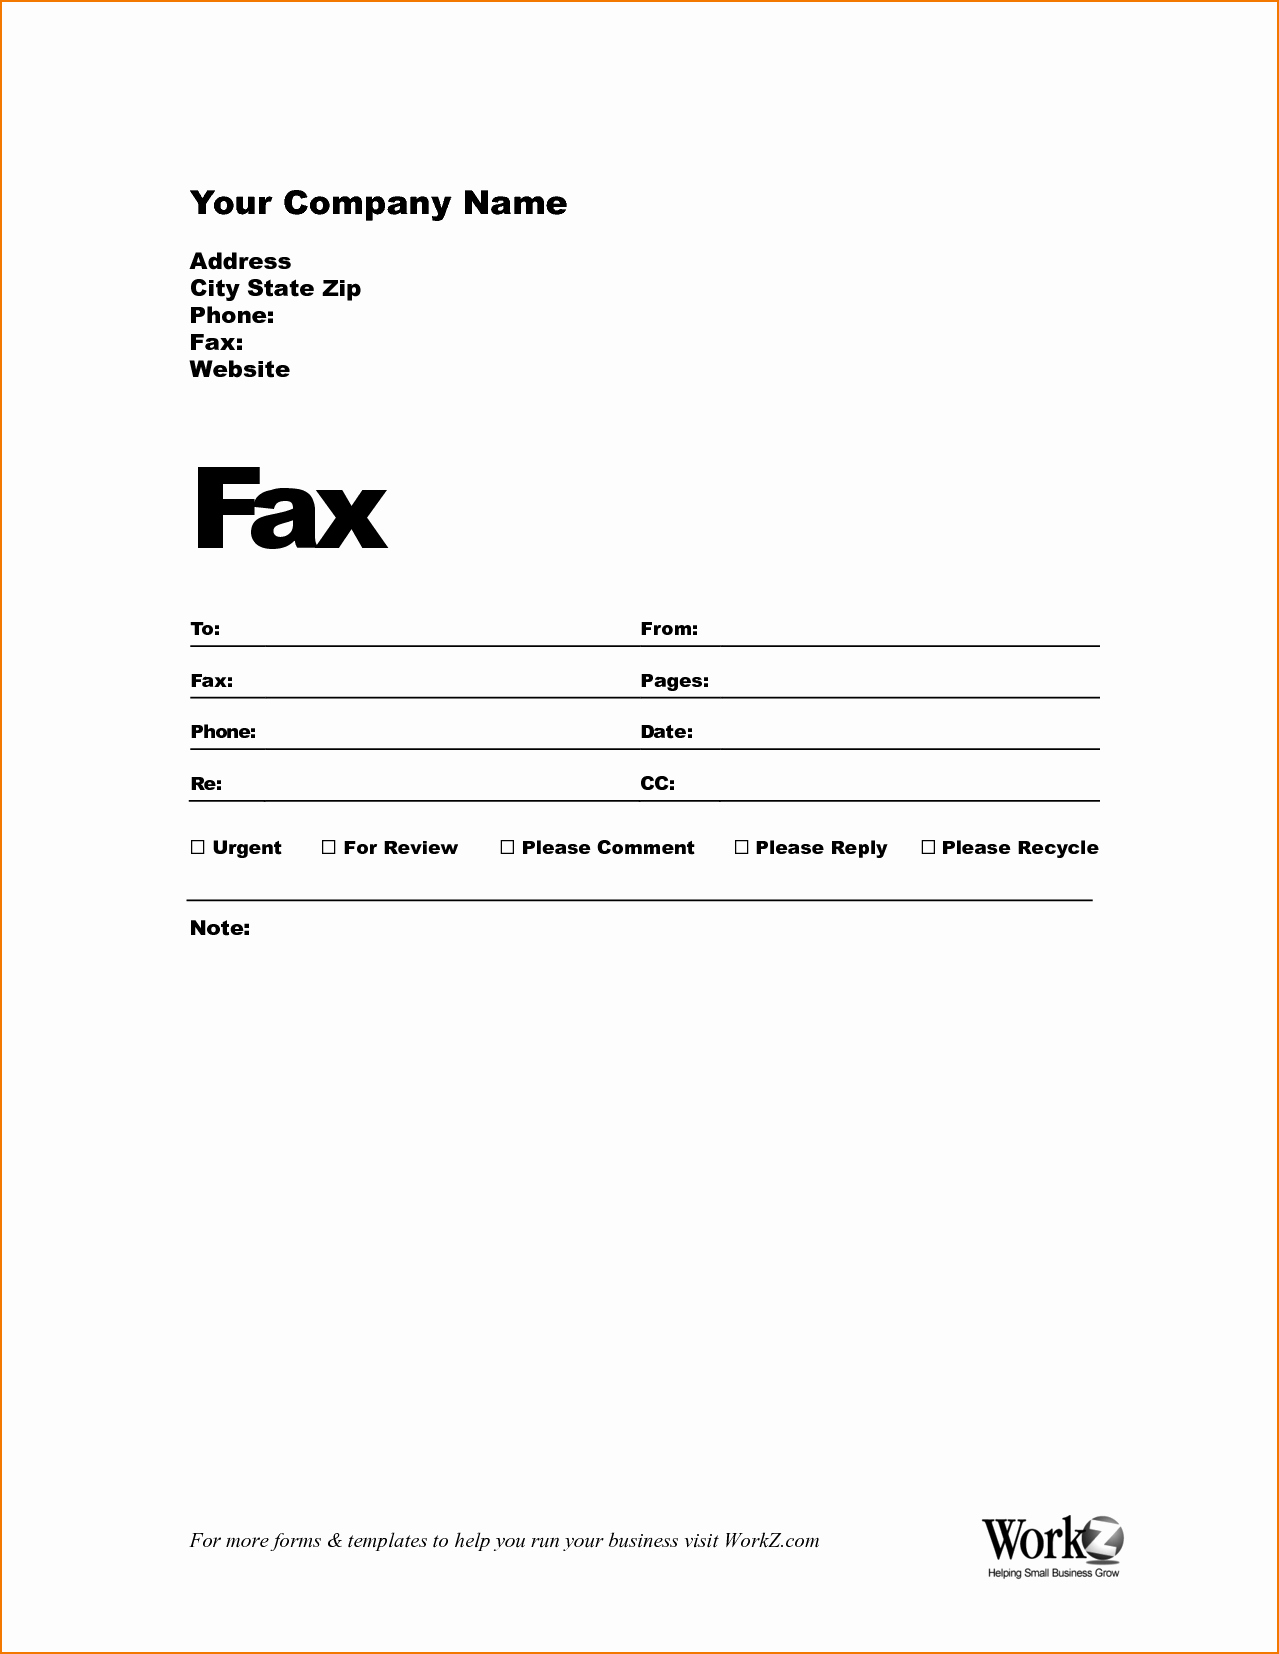 Fax Cover Page Sample Fresh 4 Sample Fax Cover Sheet